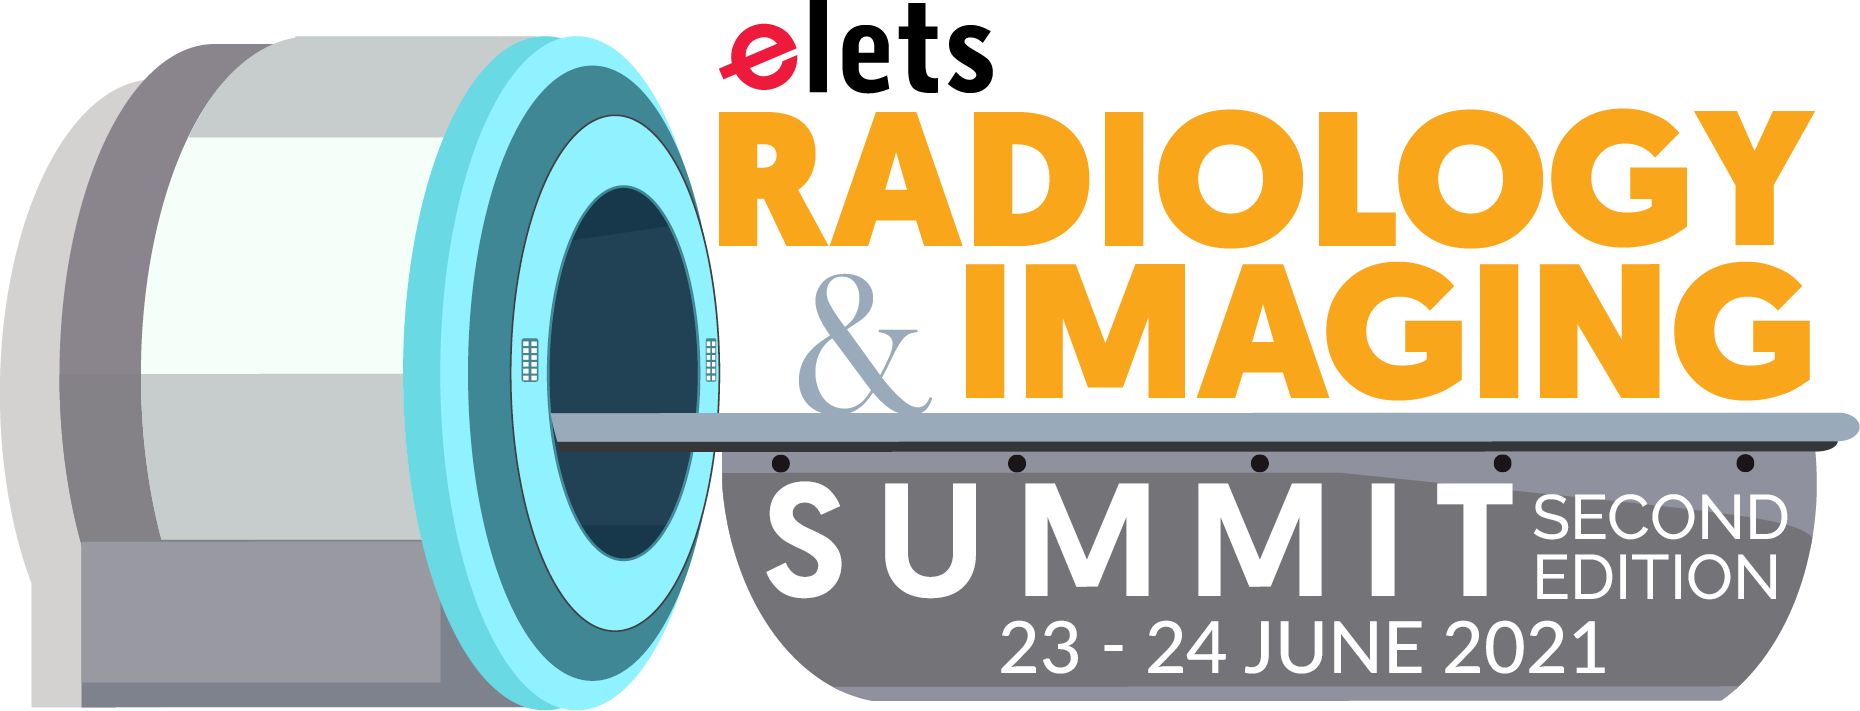 2nd Radiology and Imaging Summit 2021